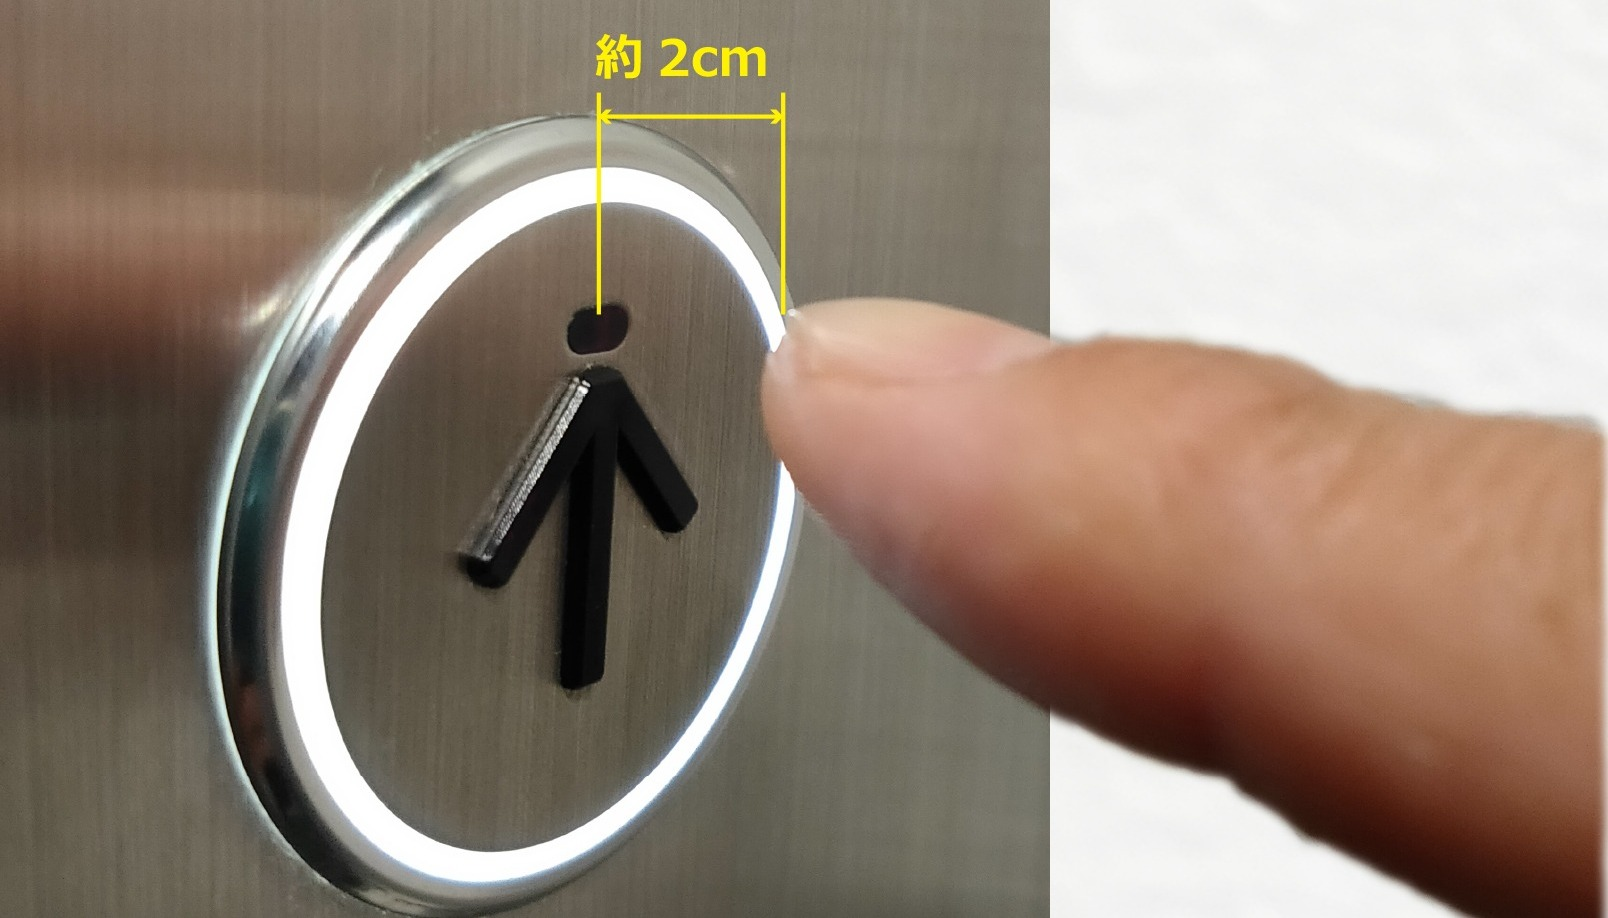 Japan touchless buttons